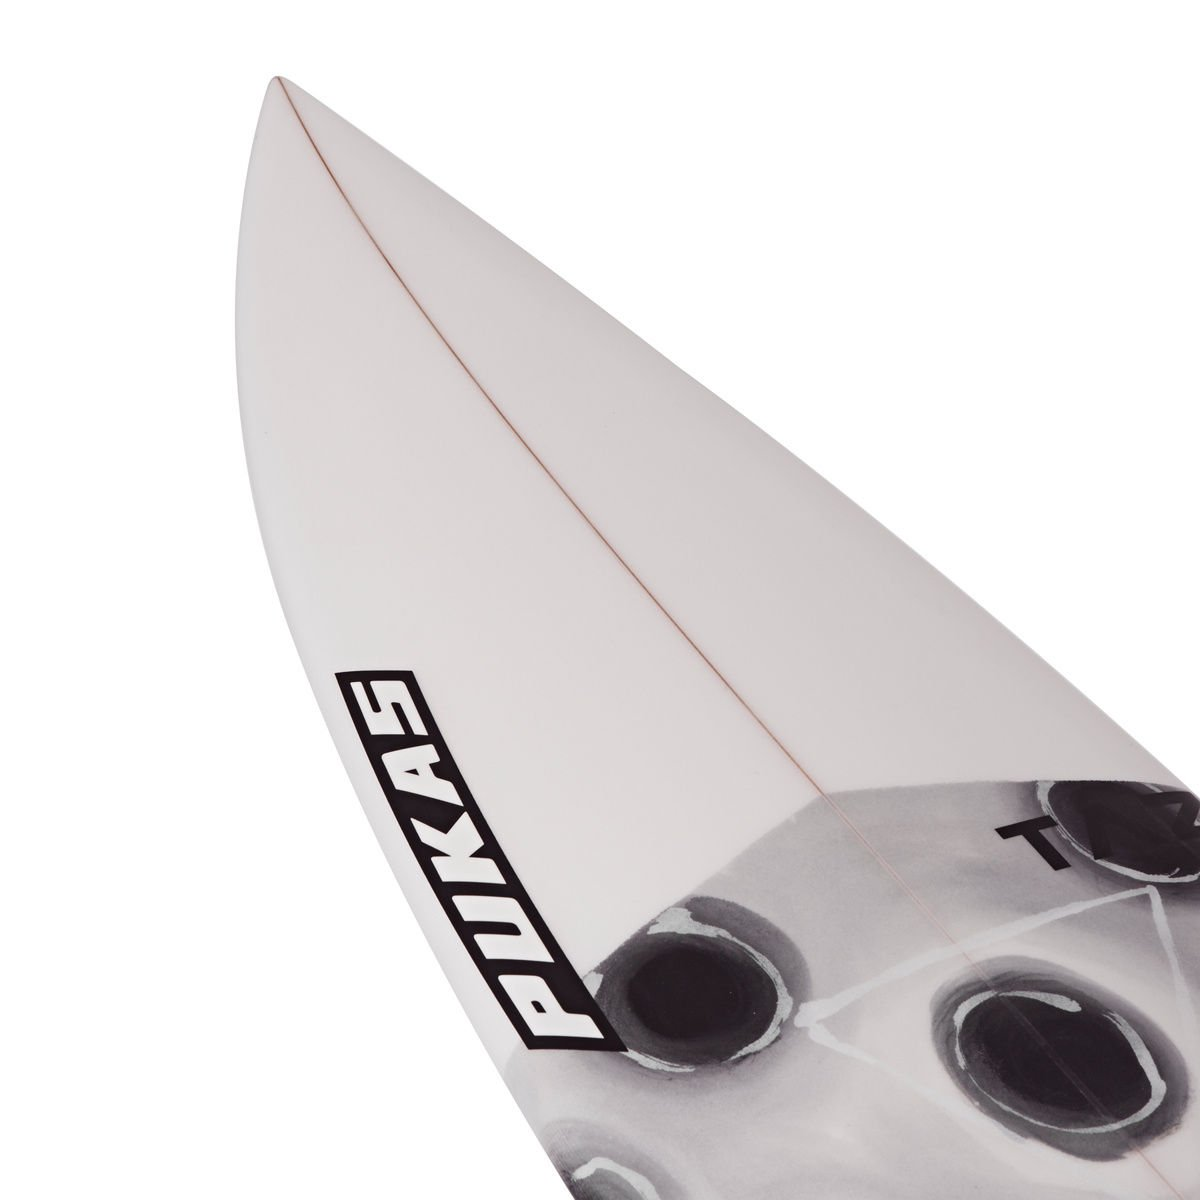 pukas Pop Tabla de Surf - White Talla:6ft 2: Amazon.es: Deportes y aire libre